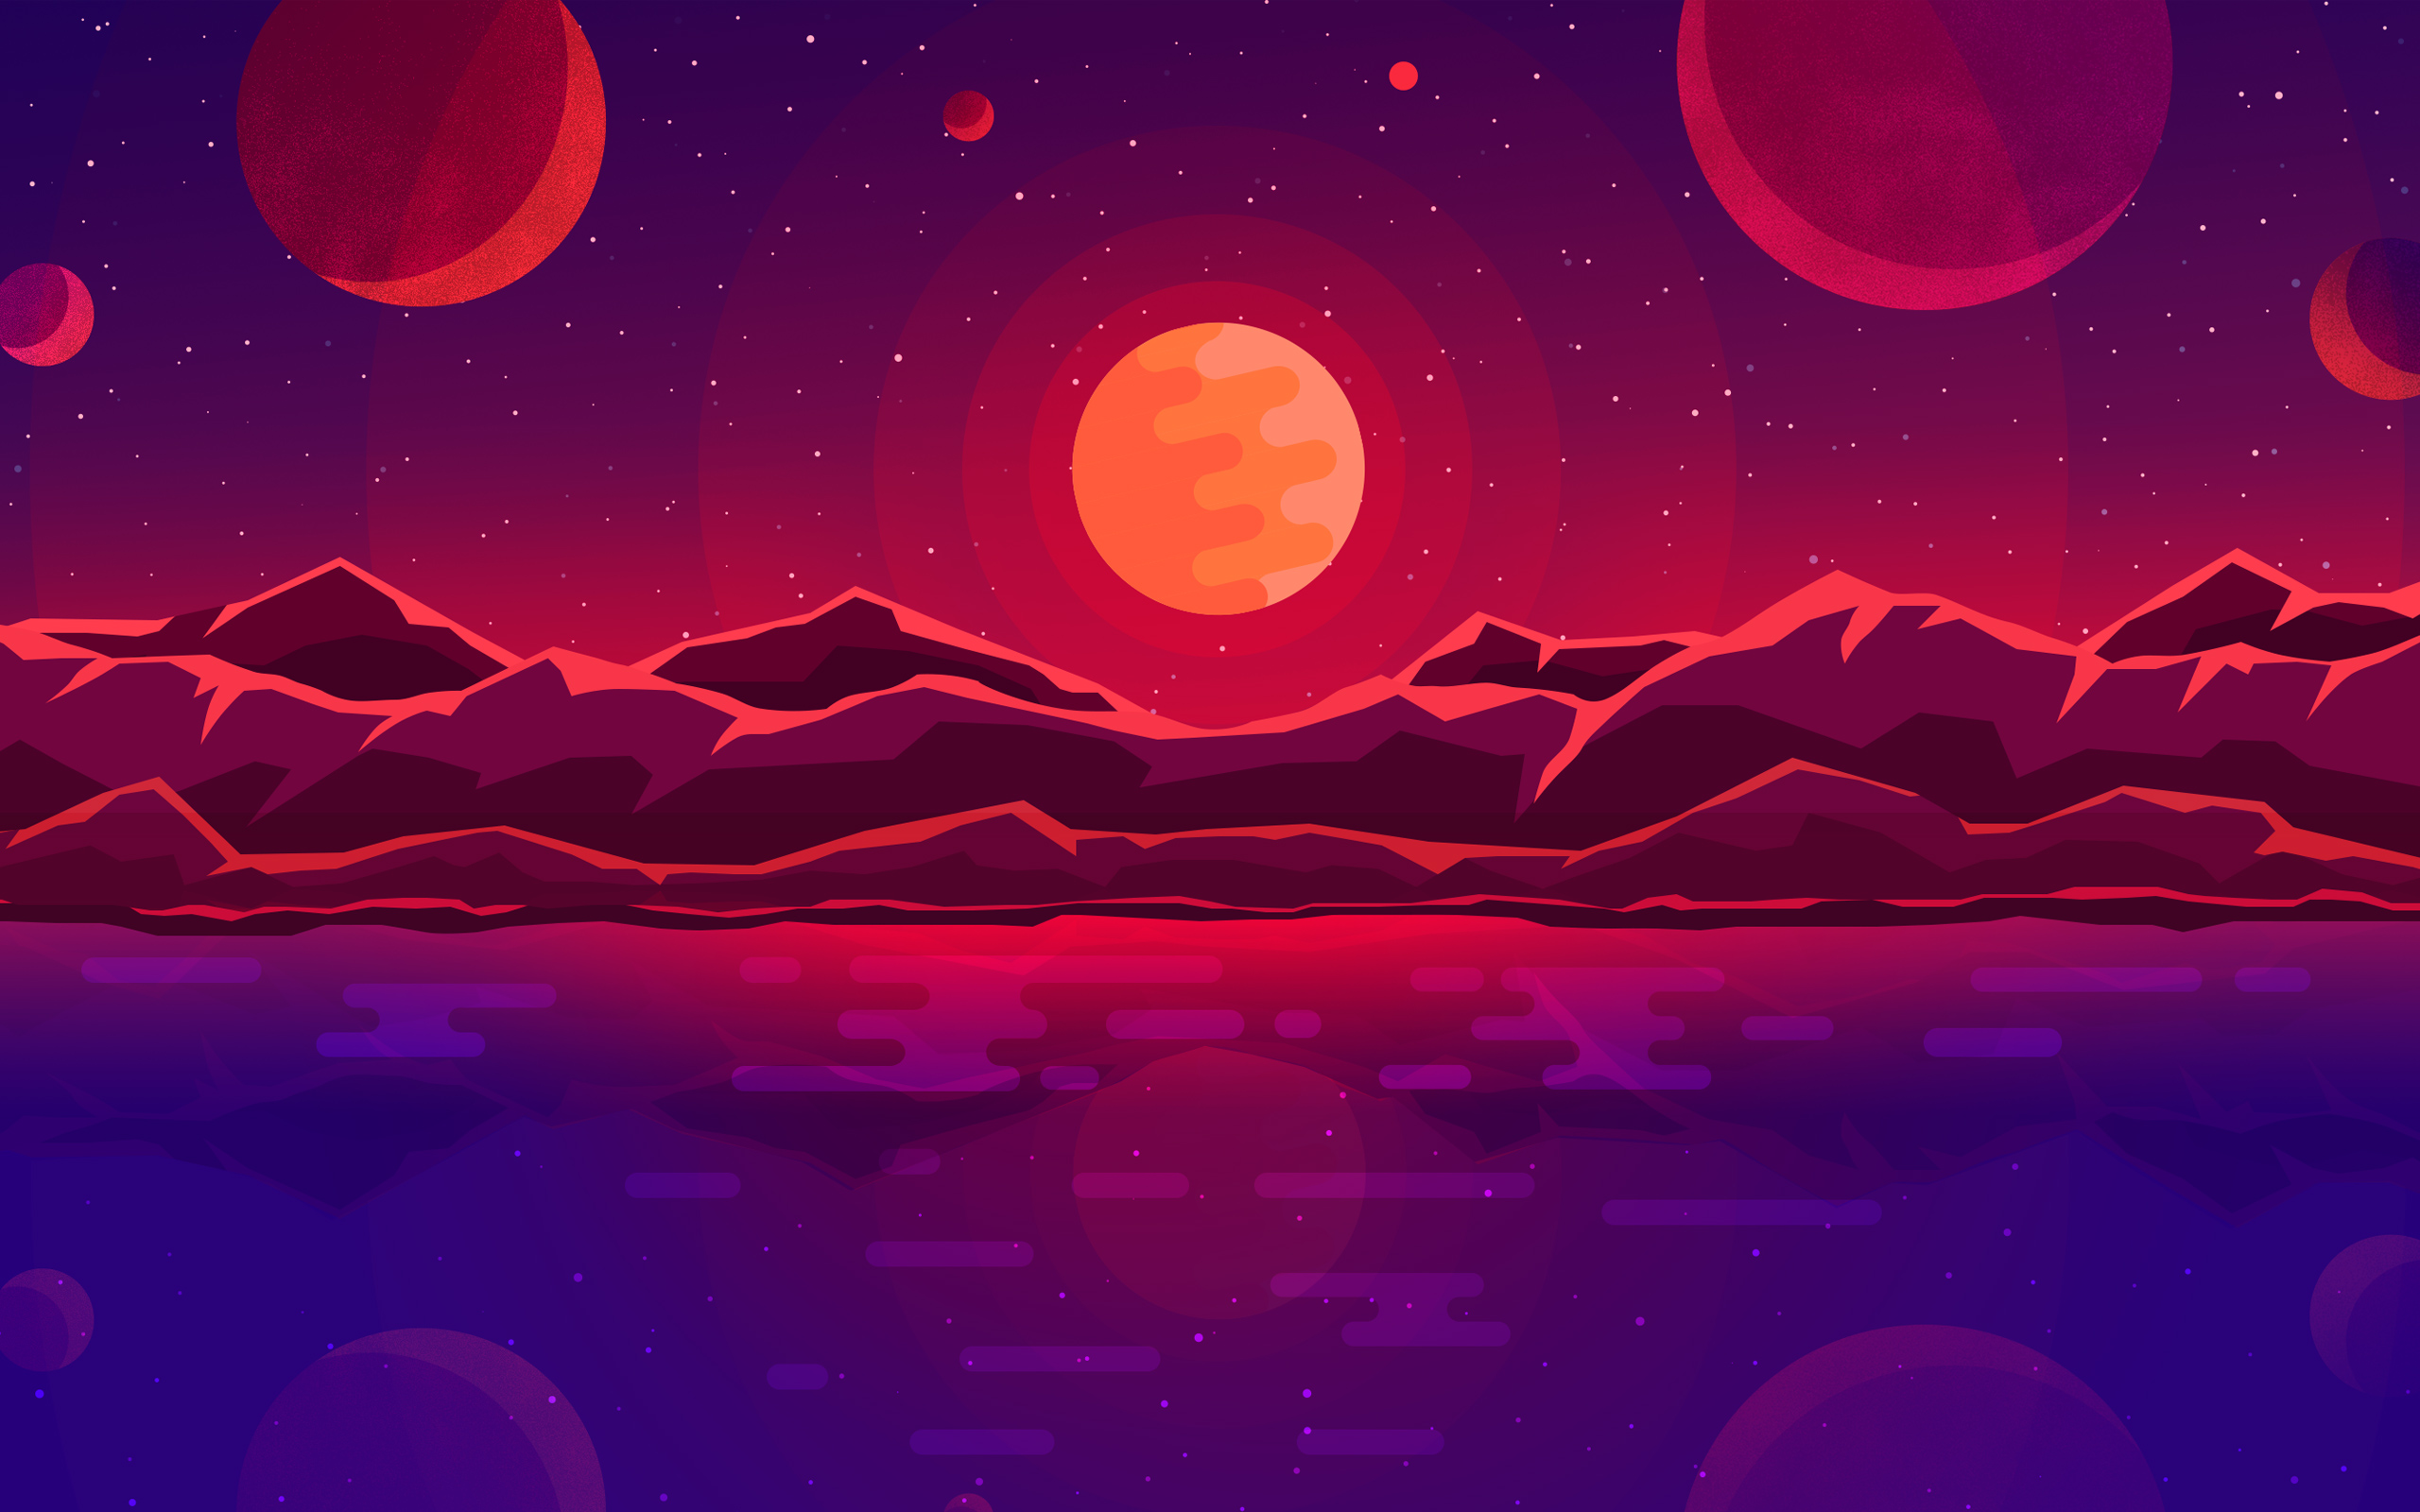 Wallpaper Sunset Planets HD Oni